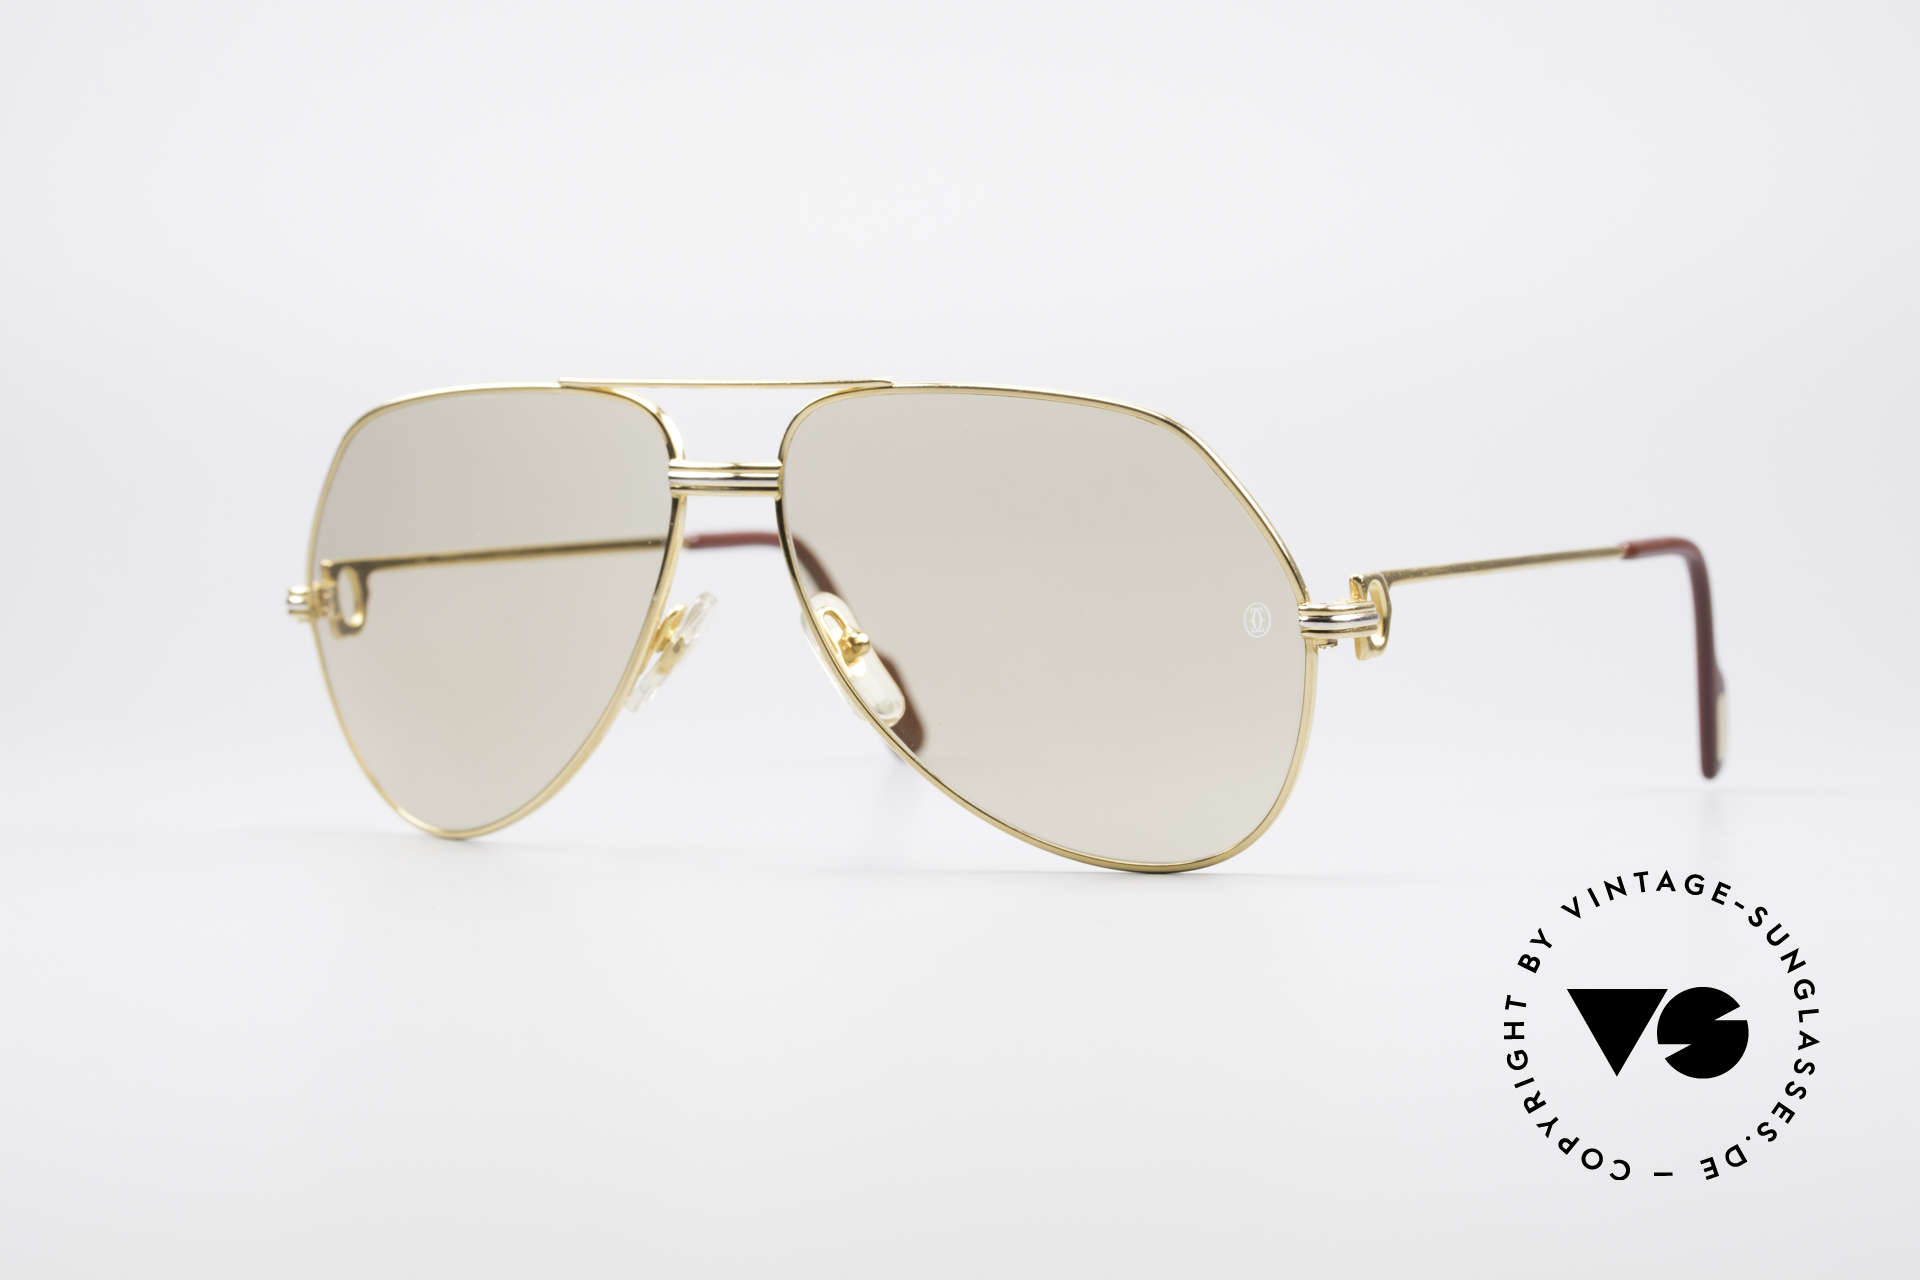 Cartier Vendome LC - L Mineral Lens With Cartier Logo, Vendome = the most famous eyewear design by CARTIER, Made for Men